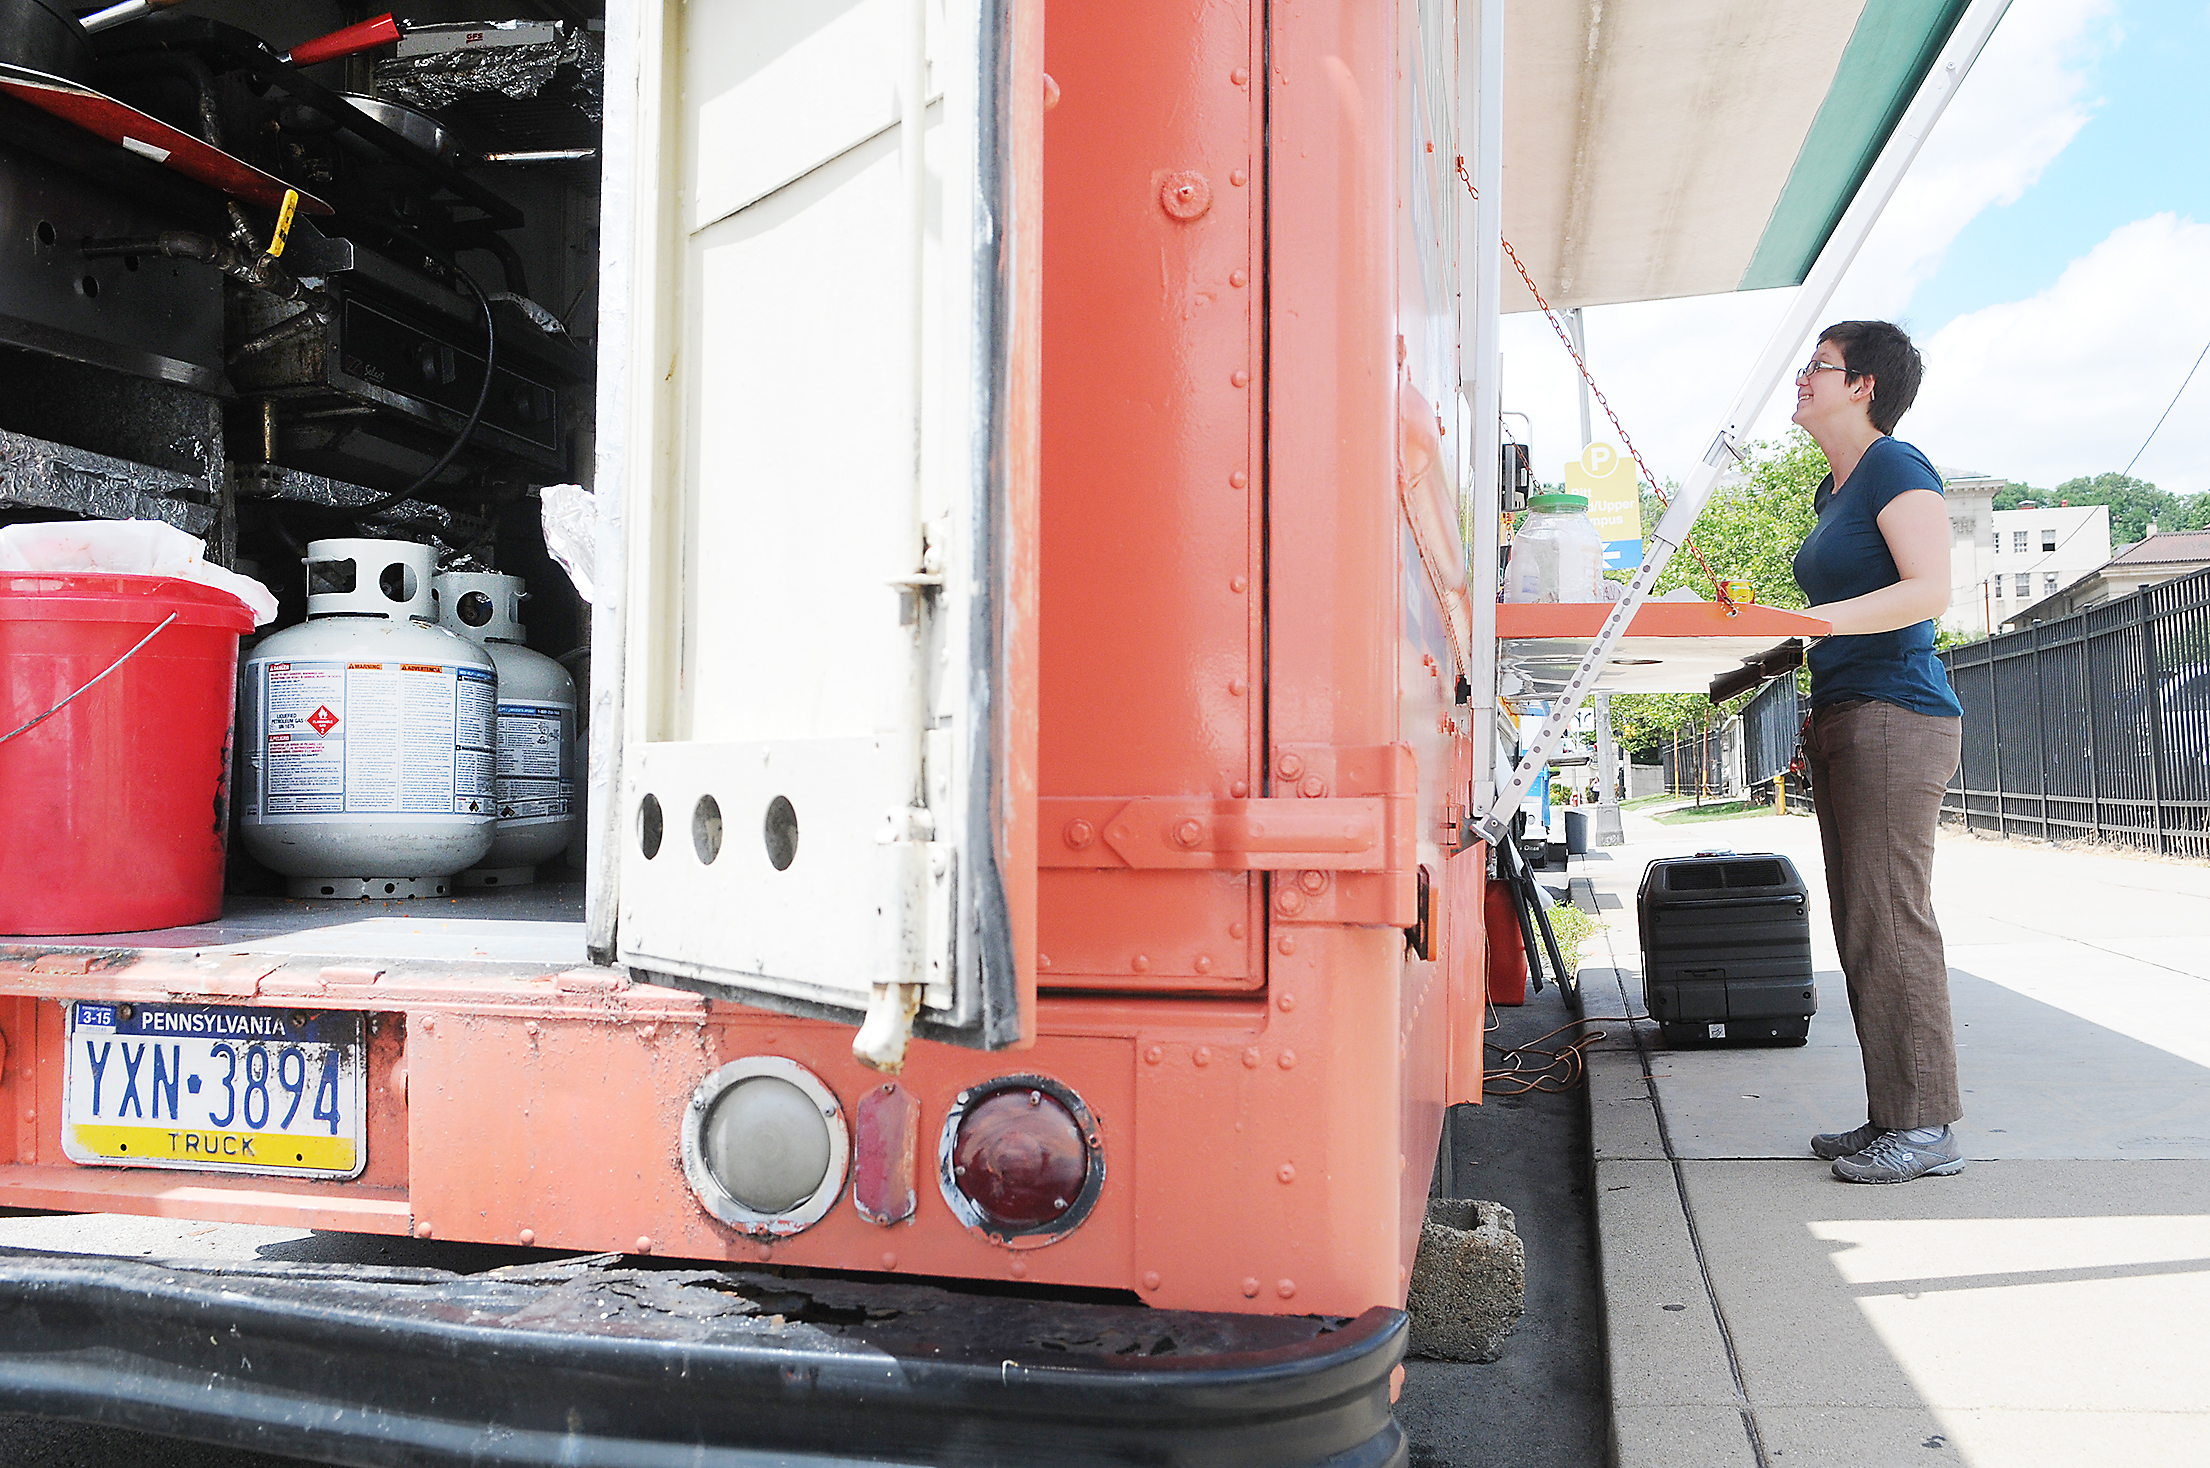 Pittsburgh, PA: Food Truck Explosions Raise Concerns About Safety Rules